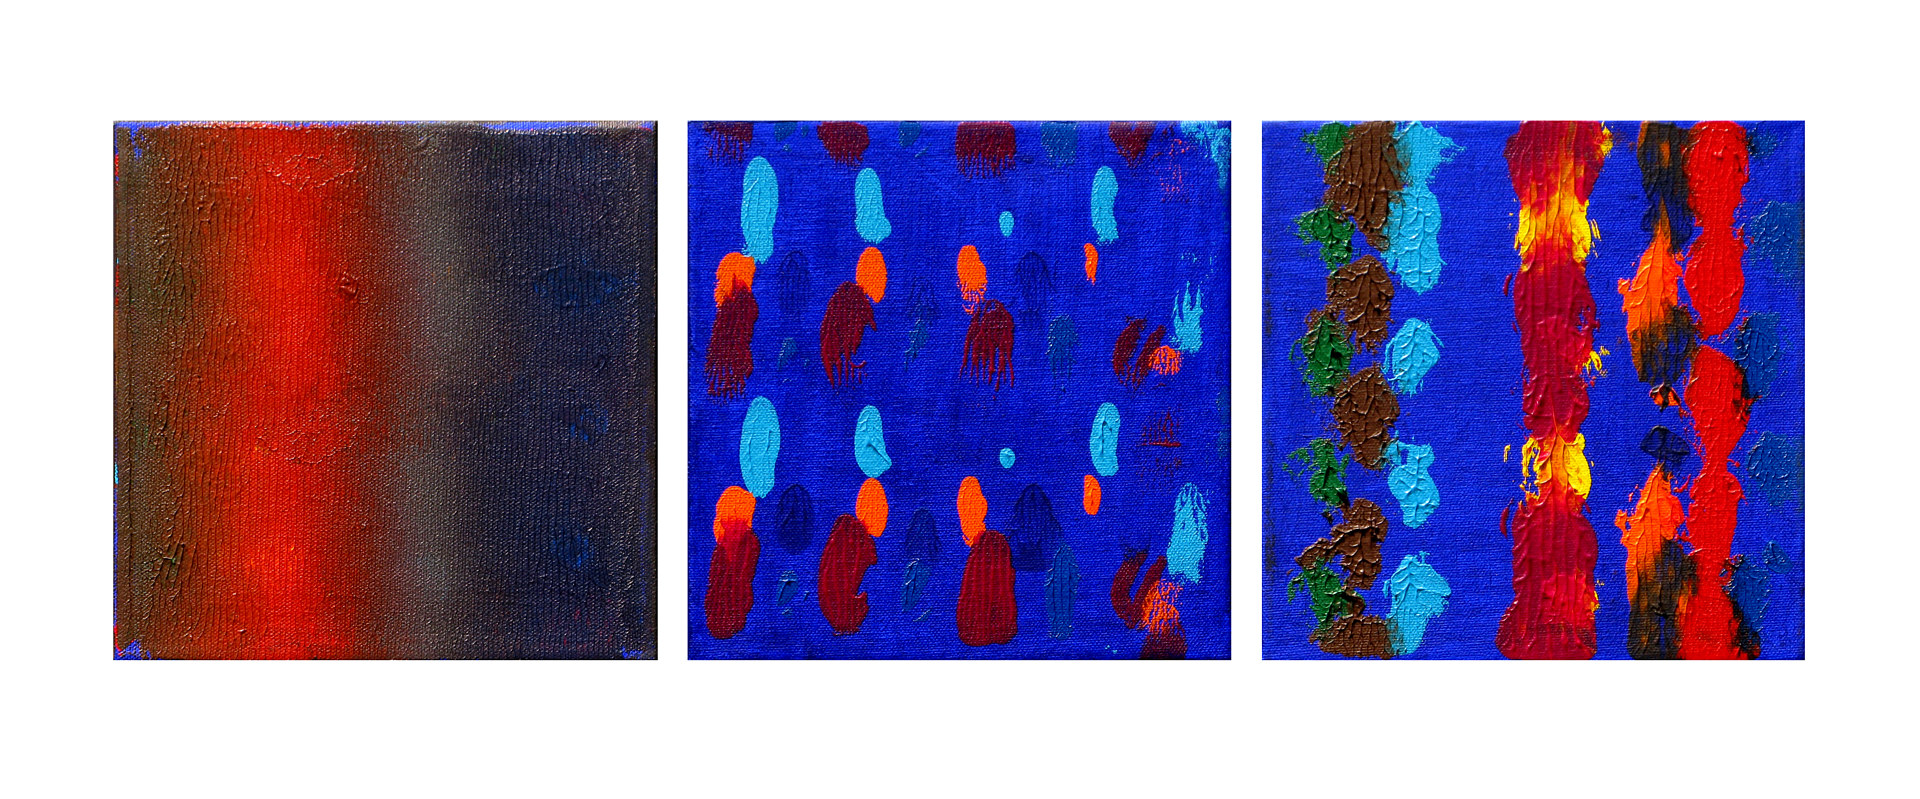 Acrylic painting Light of the Night, 8x8 inches each by Hooshang Khorasani